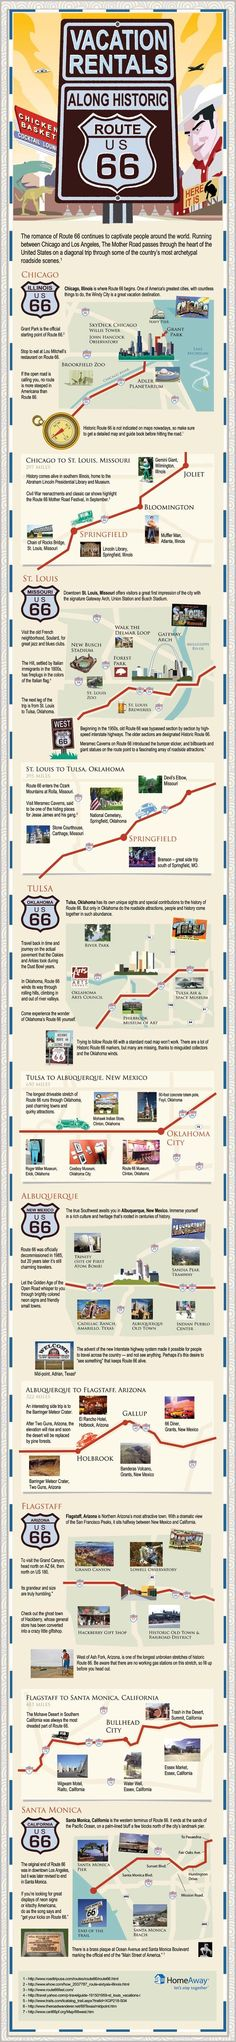 Road Trip Time! Fun Stops and Vacation Rentals Along Route 66 [Infographic]